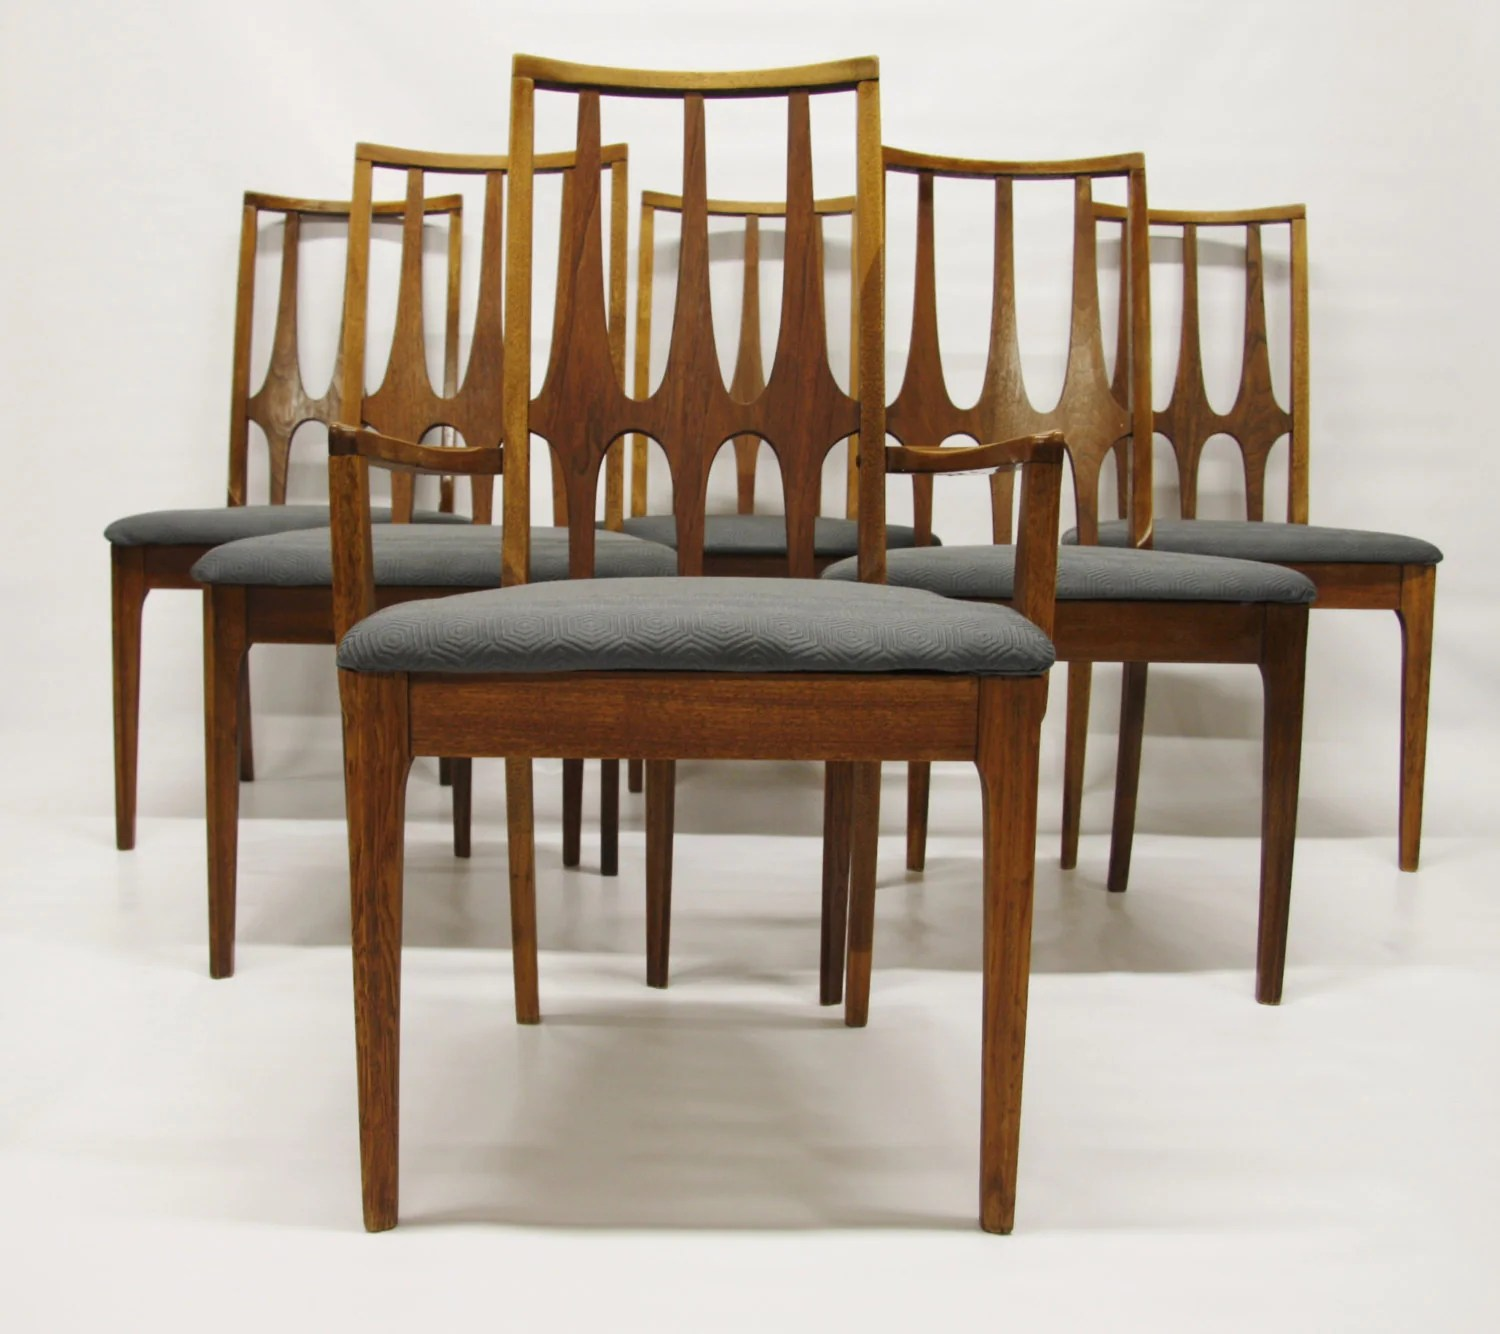 Mid Century Dining Chairs Mid Century Modern Broyhill Brasilia Dining Chairs Set Of 6